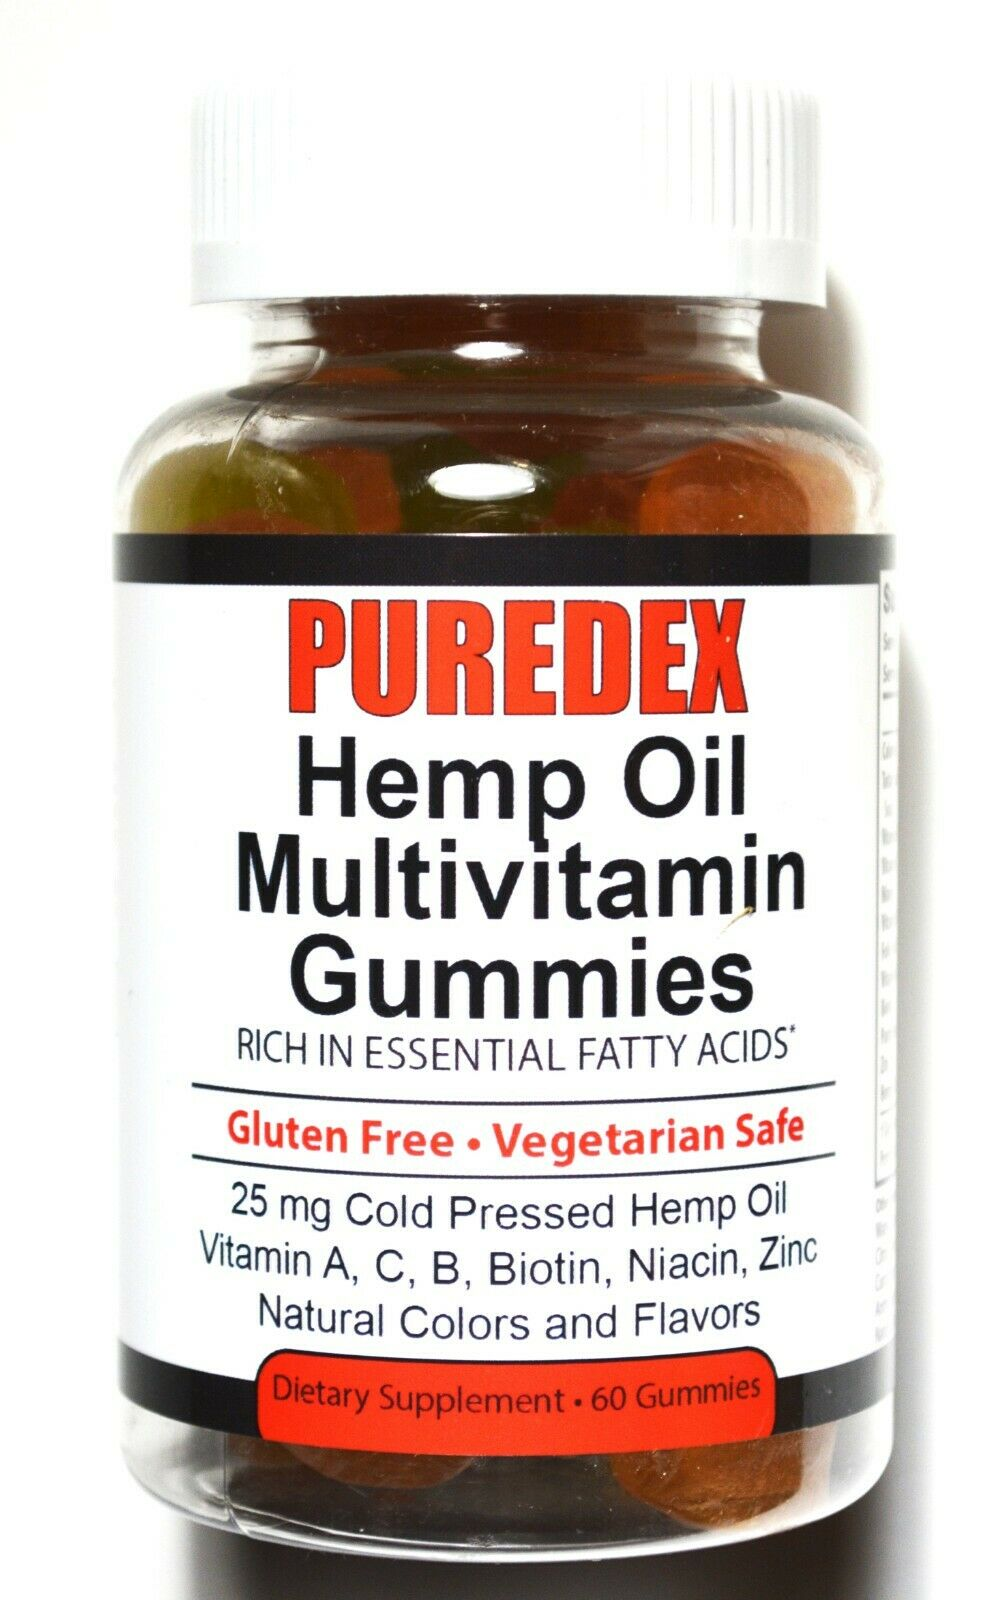 Puredex Hemp Oil Multivitamin Gummies 60ct. 26mg Hemp Oil per Gummie, Vitamins C